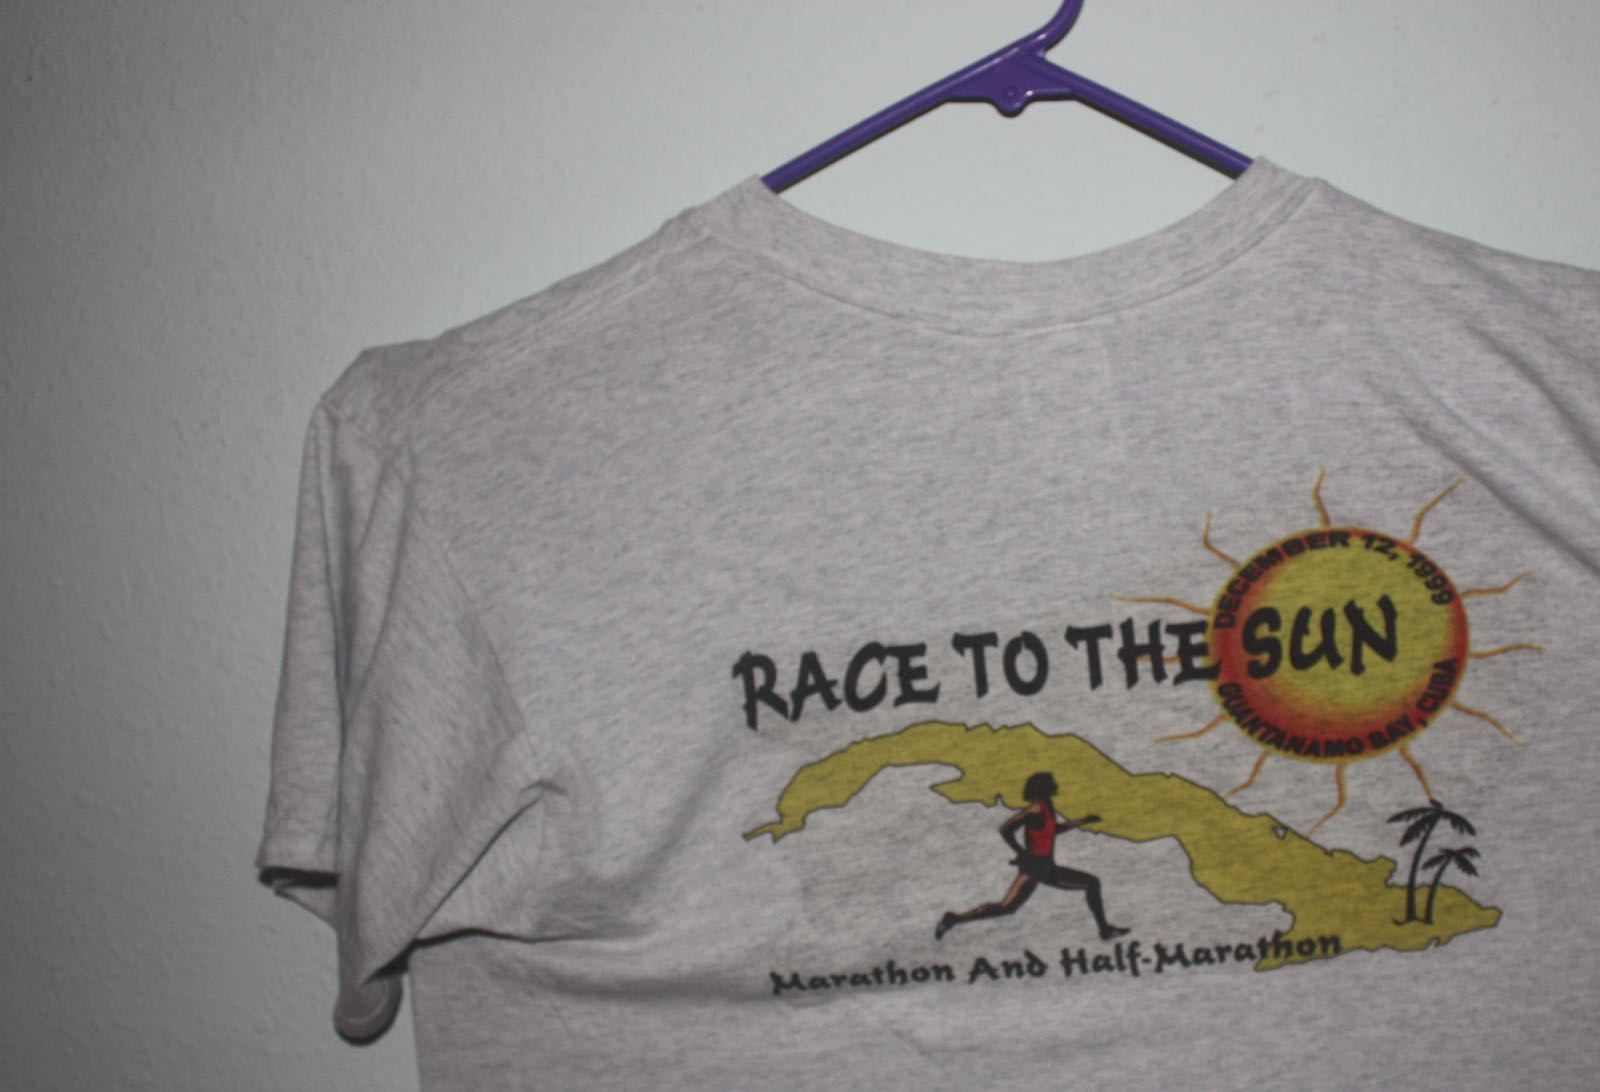 Guantanomo  Hospital Pre-911 Fun Run Tee 2